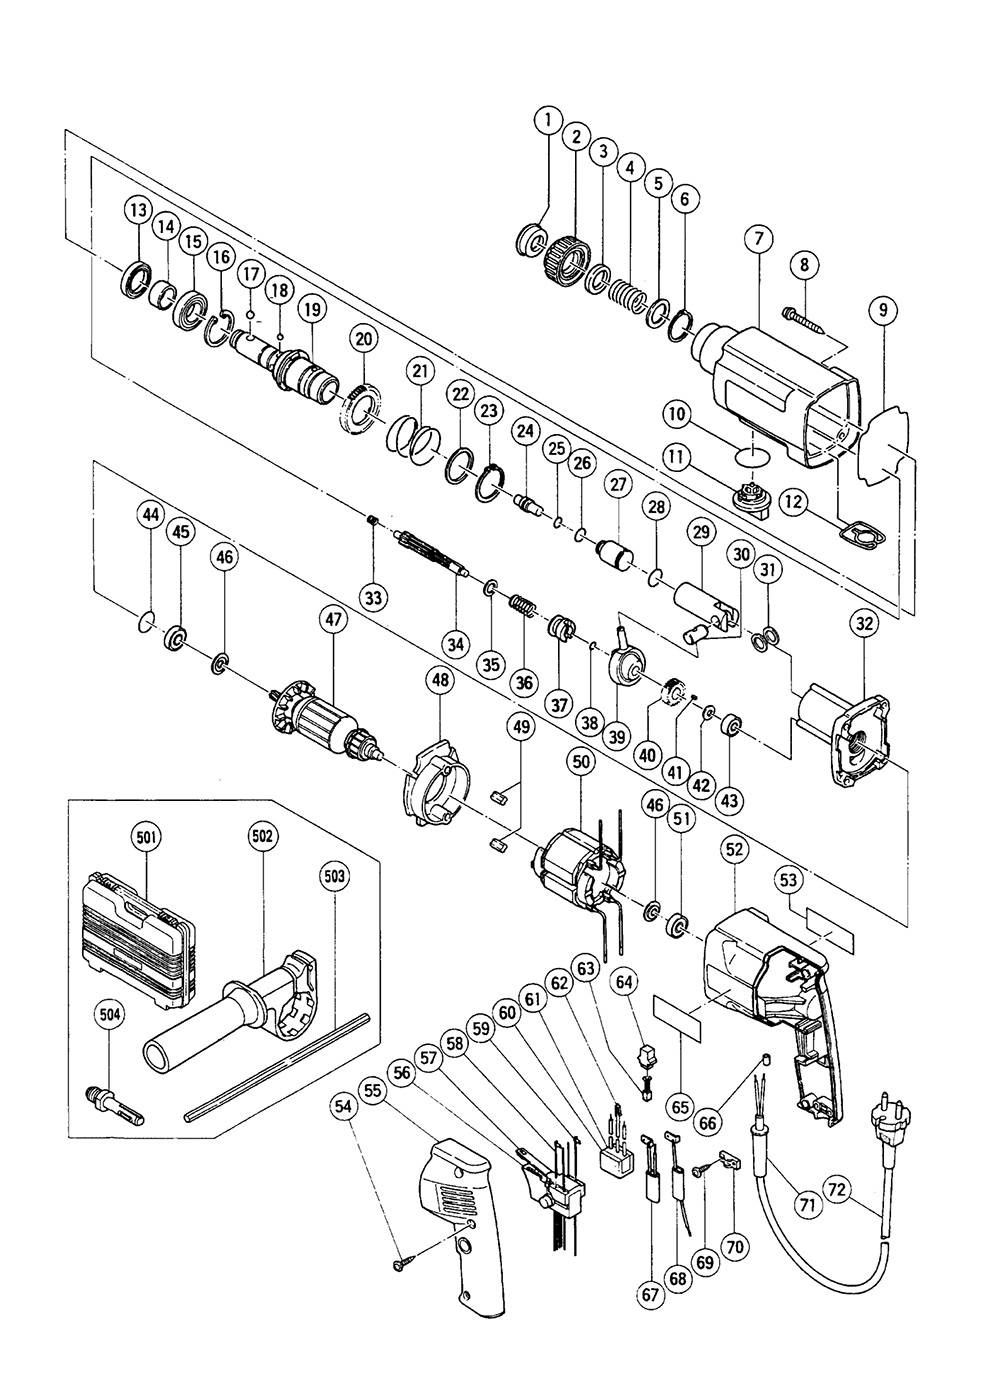 hitachi tool schematics lima stanito Marine Alternator Wiring buy hitachi dh24vb replacement tool parts hitachi dh24vb hitachi user manuals hitachi alternator wiring diagram